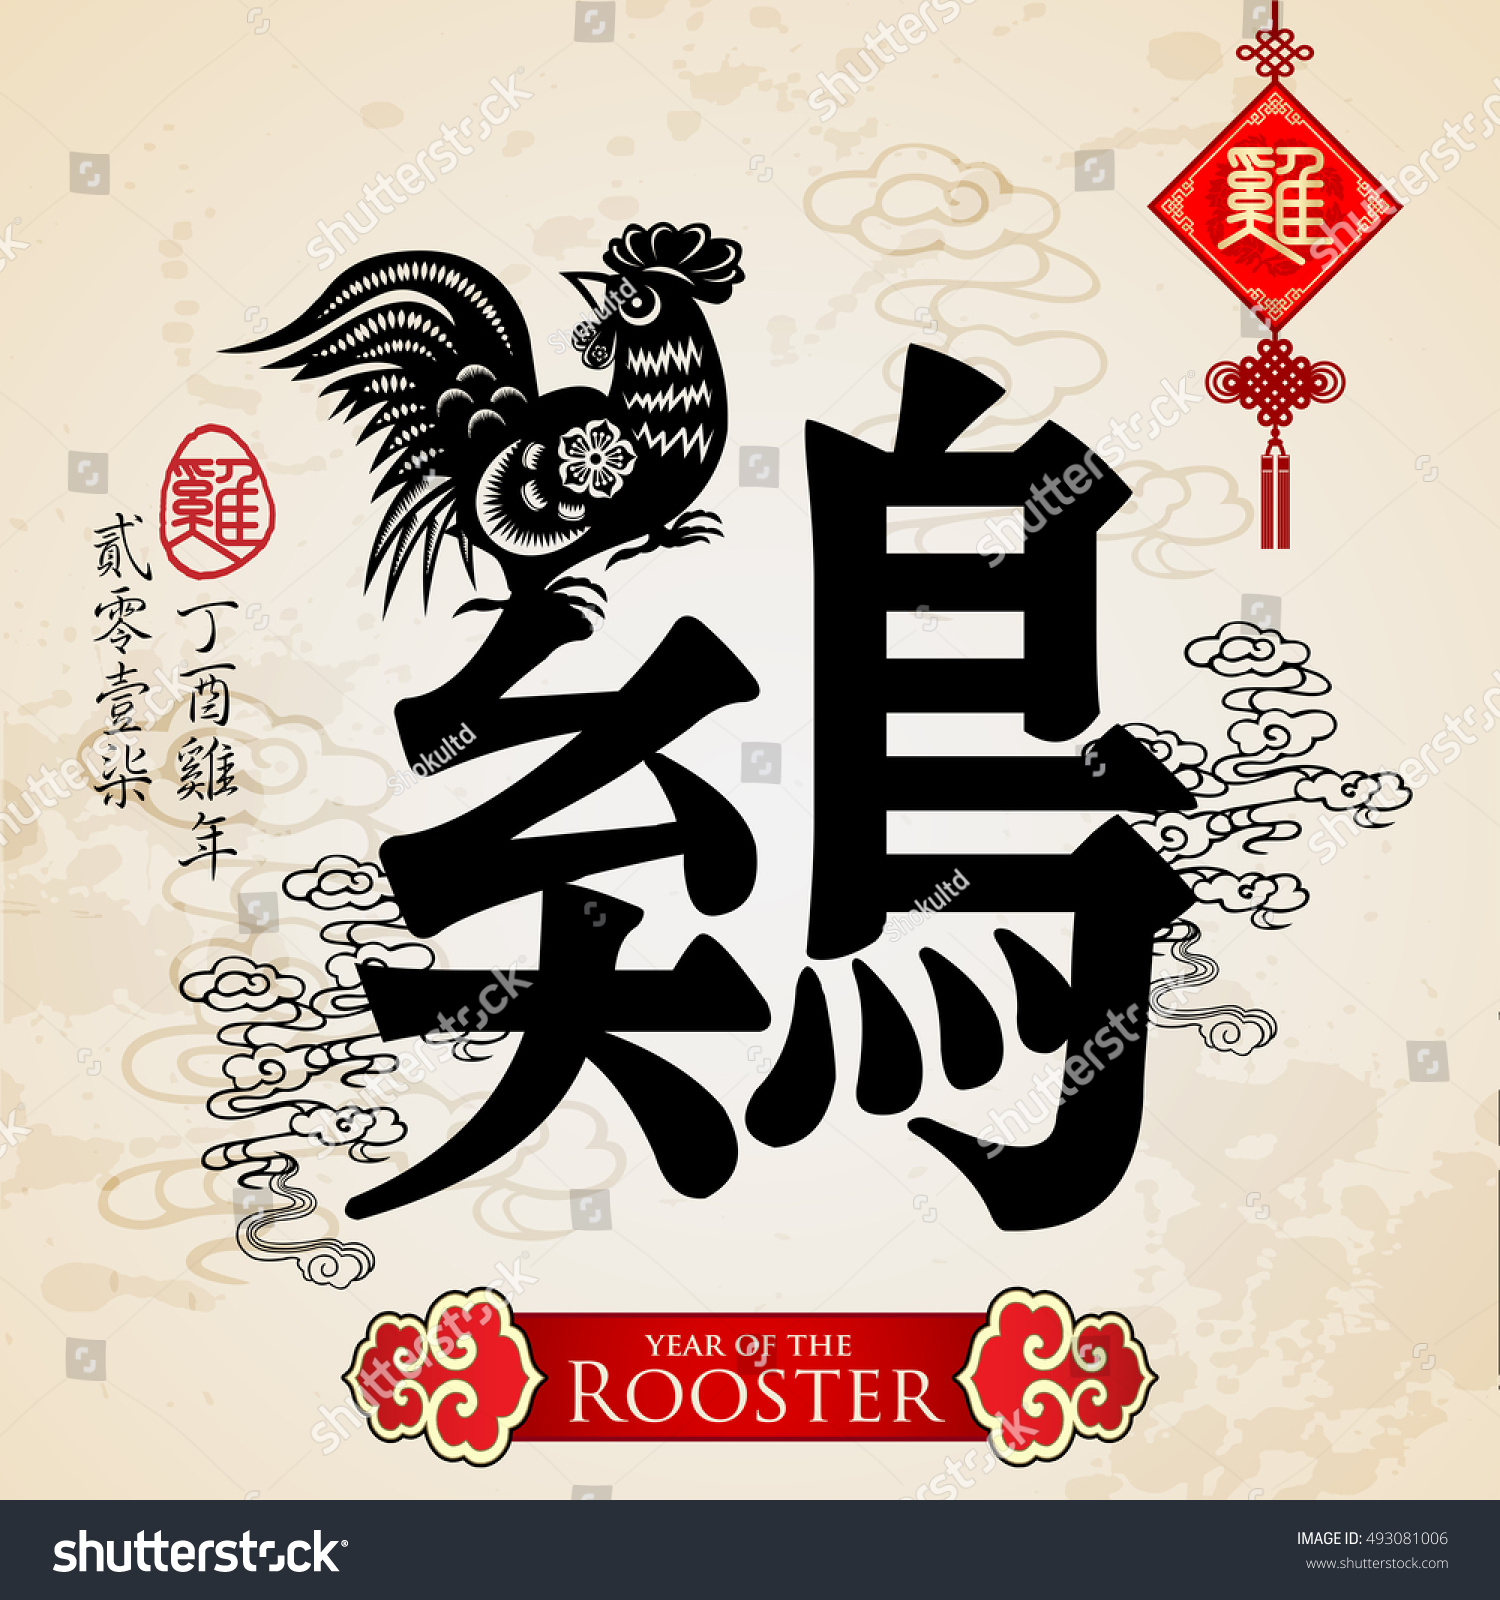 Chinese zodiac rooster with calligraphy design translation